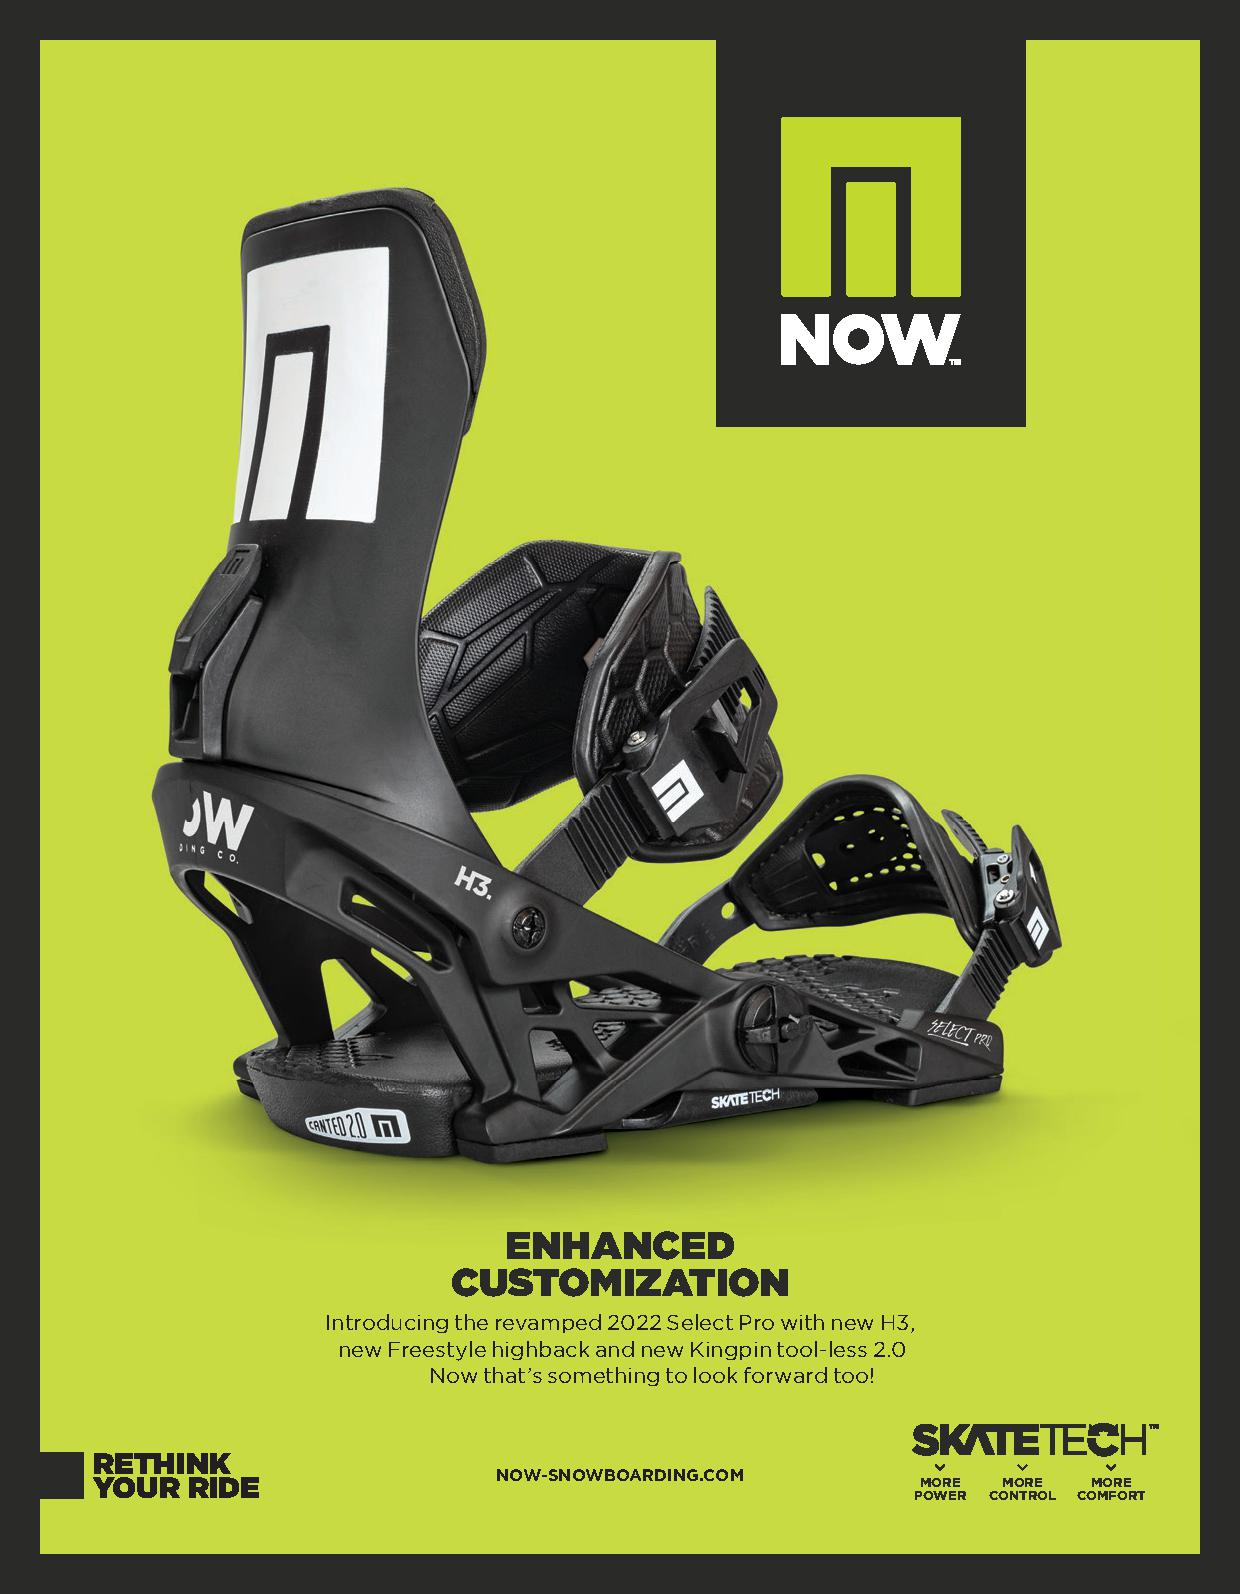 104 Now snowboard bindings